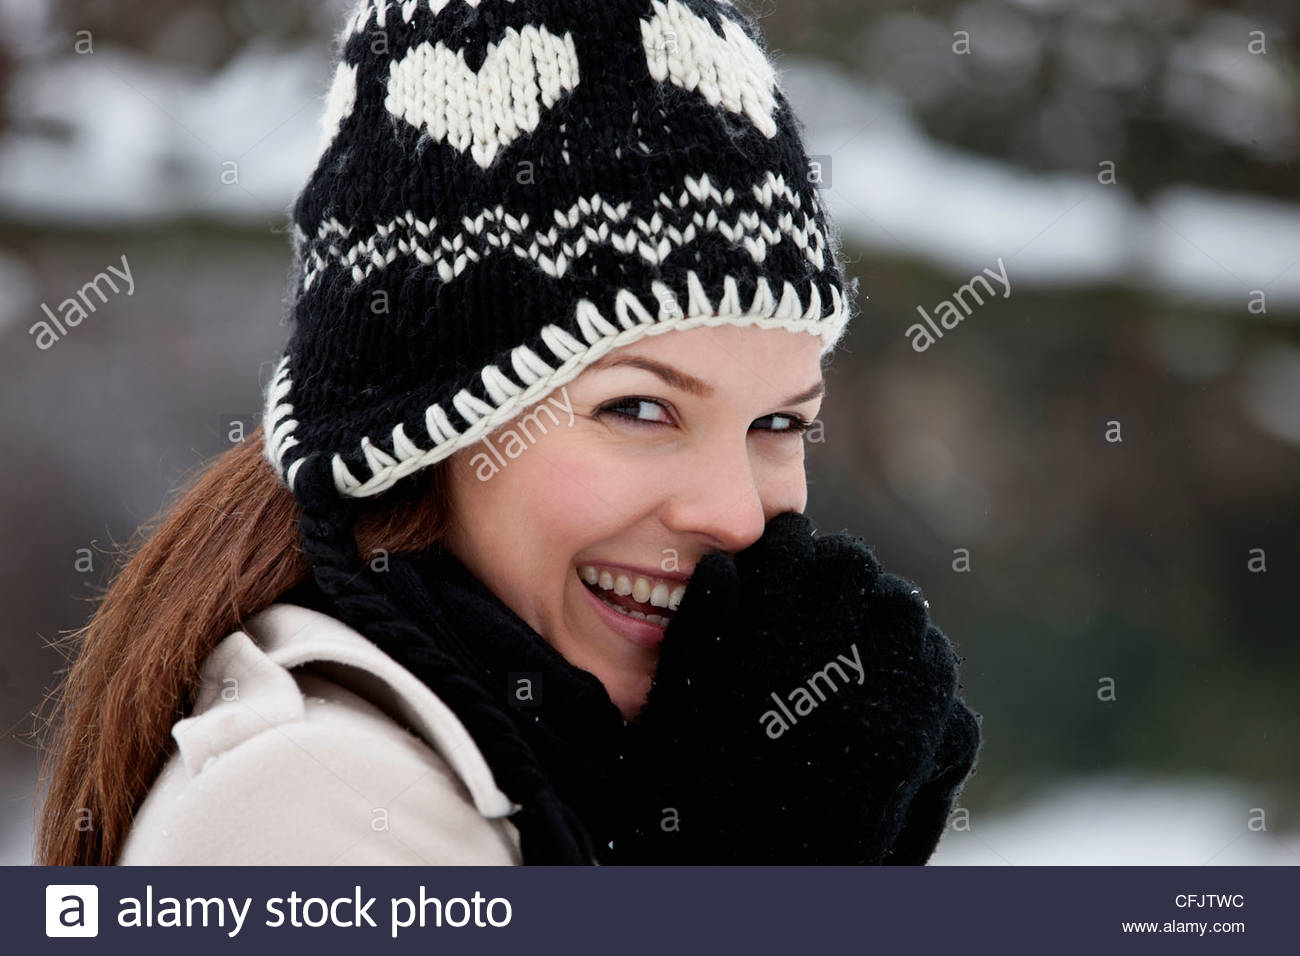 Portrait of a young woman wearing a woolen hat, trying to keep warm - Stock Image